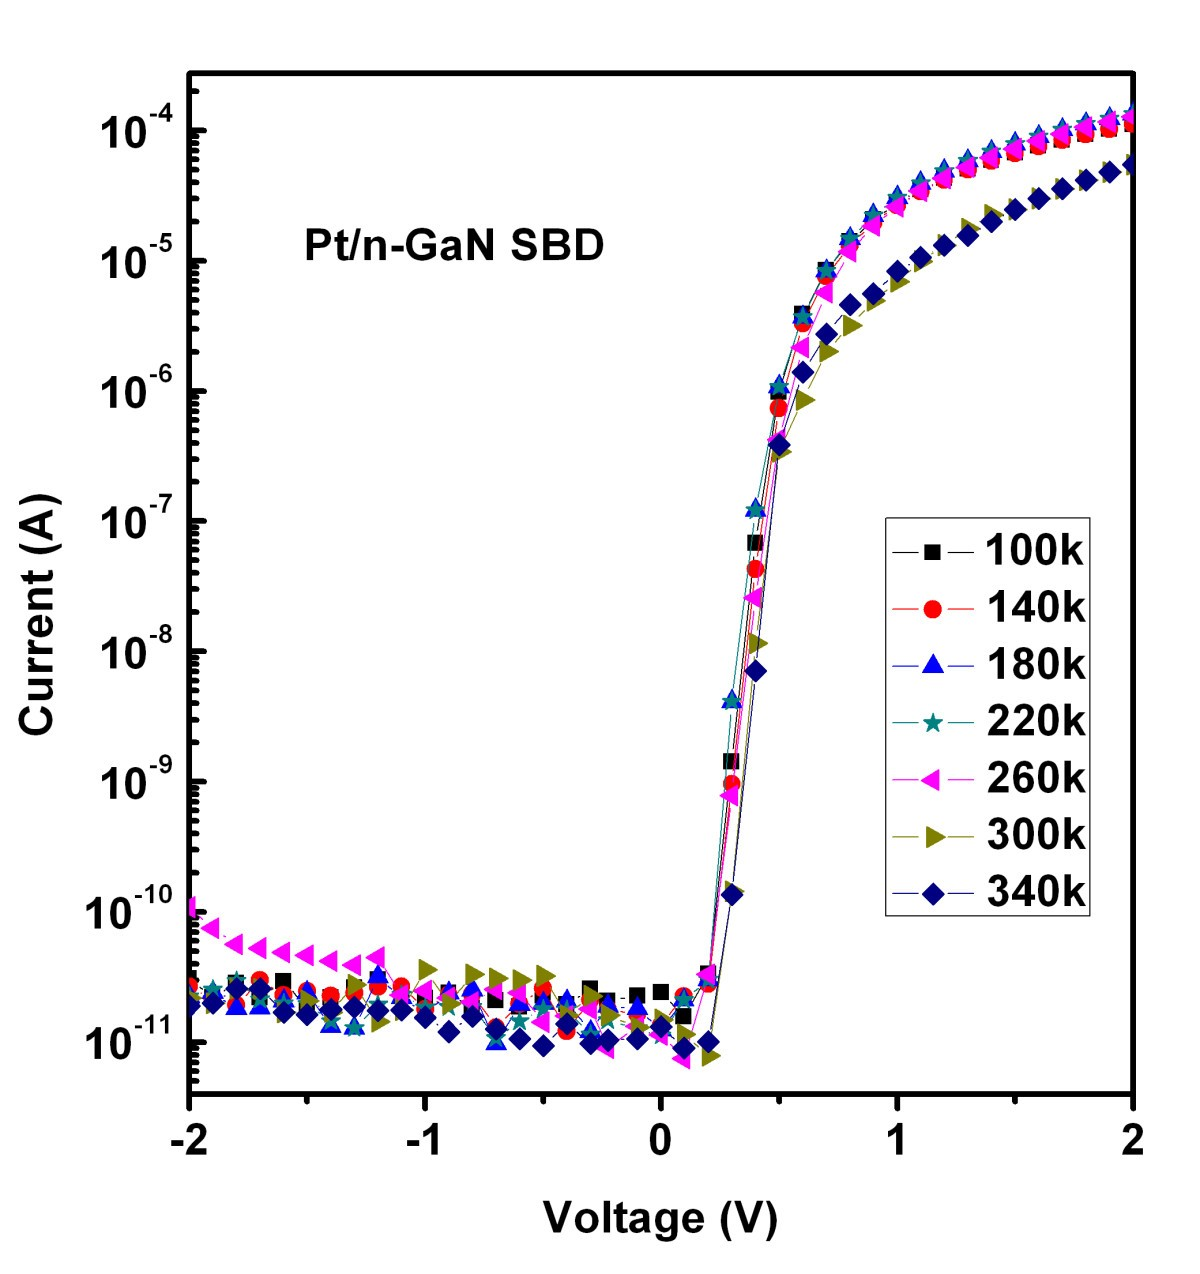 Temperature Dependence Of Electrical Characteristics Pt Gan Symbol Typically Used For A Schottky Diode Figure 3